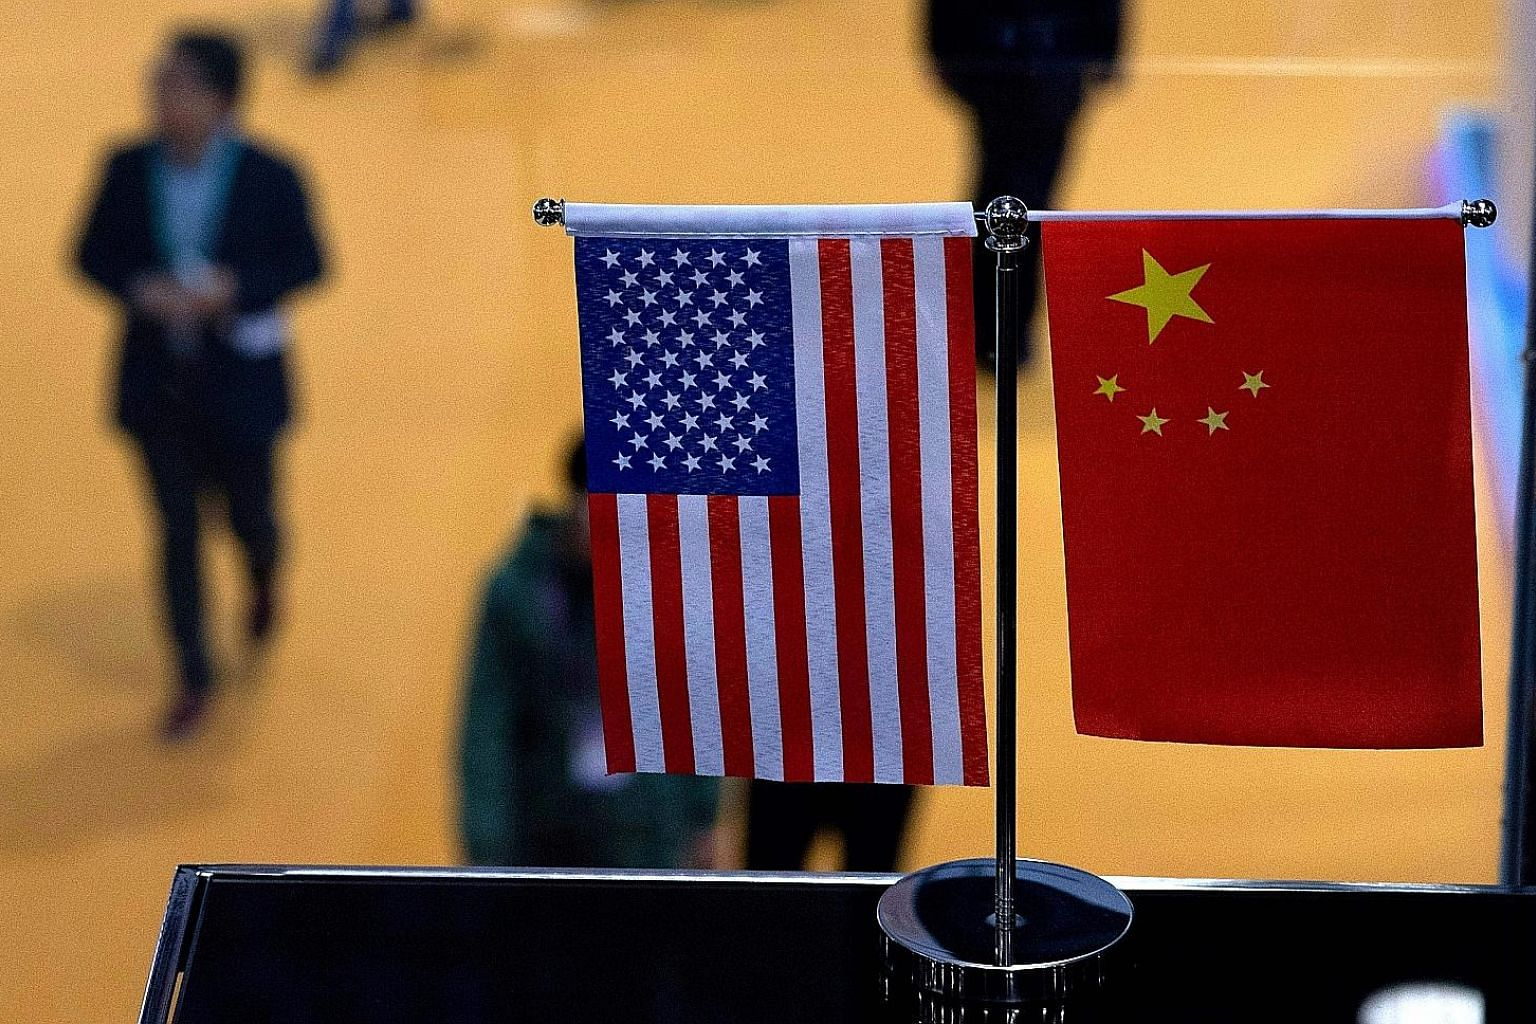 While it would be ideal if China and the US reached a comprehensive agreement to end their trade dispute, a more realistic outcome is that even if a settlement is announced, the two countries will remain engaged in discussions around trade, investmen